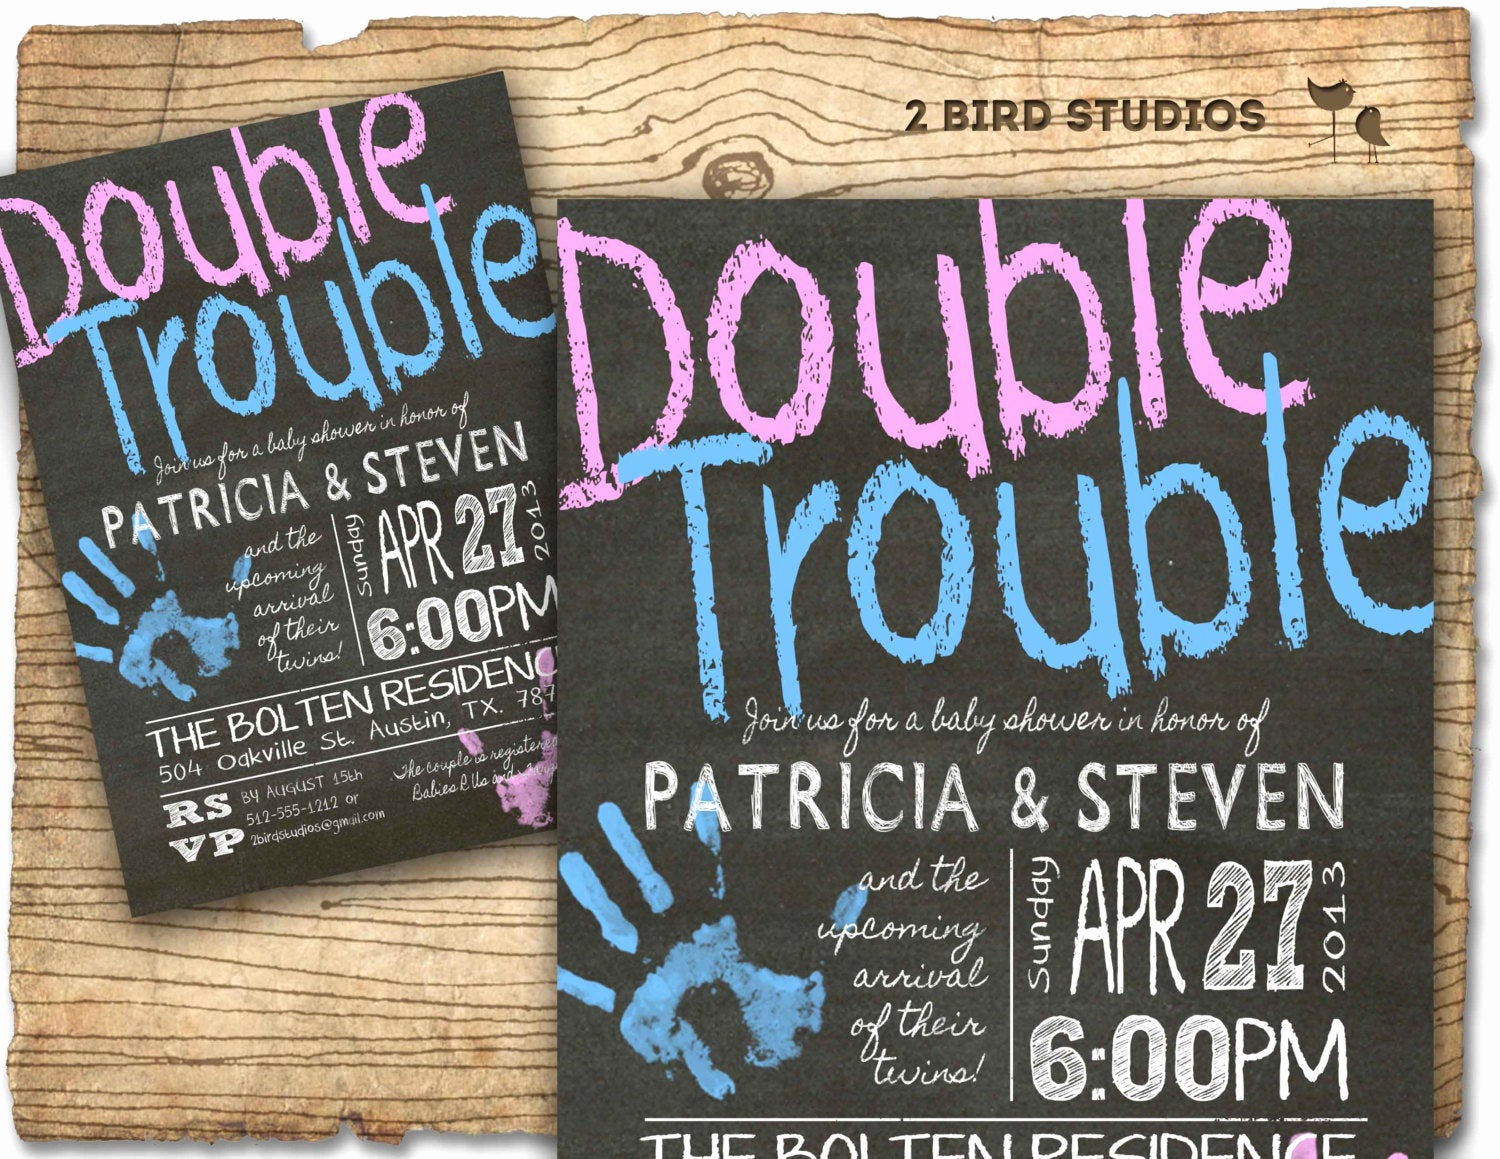 Double Baby Shower Invitation Wording Lovely Twins Baby Shower Invitation Twins Double Trouble Baby